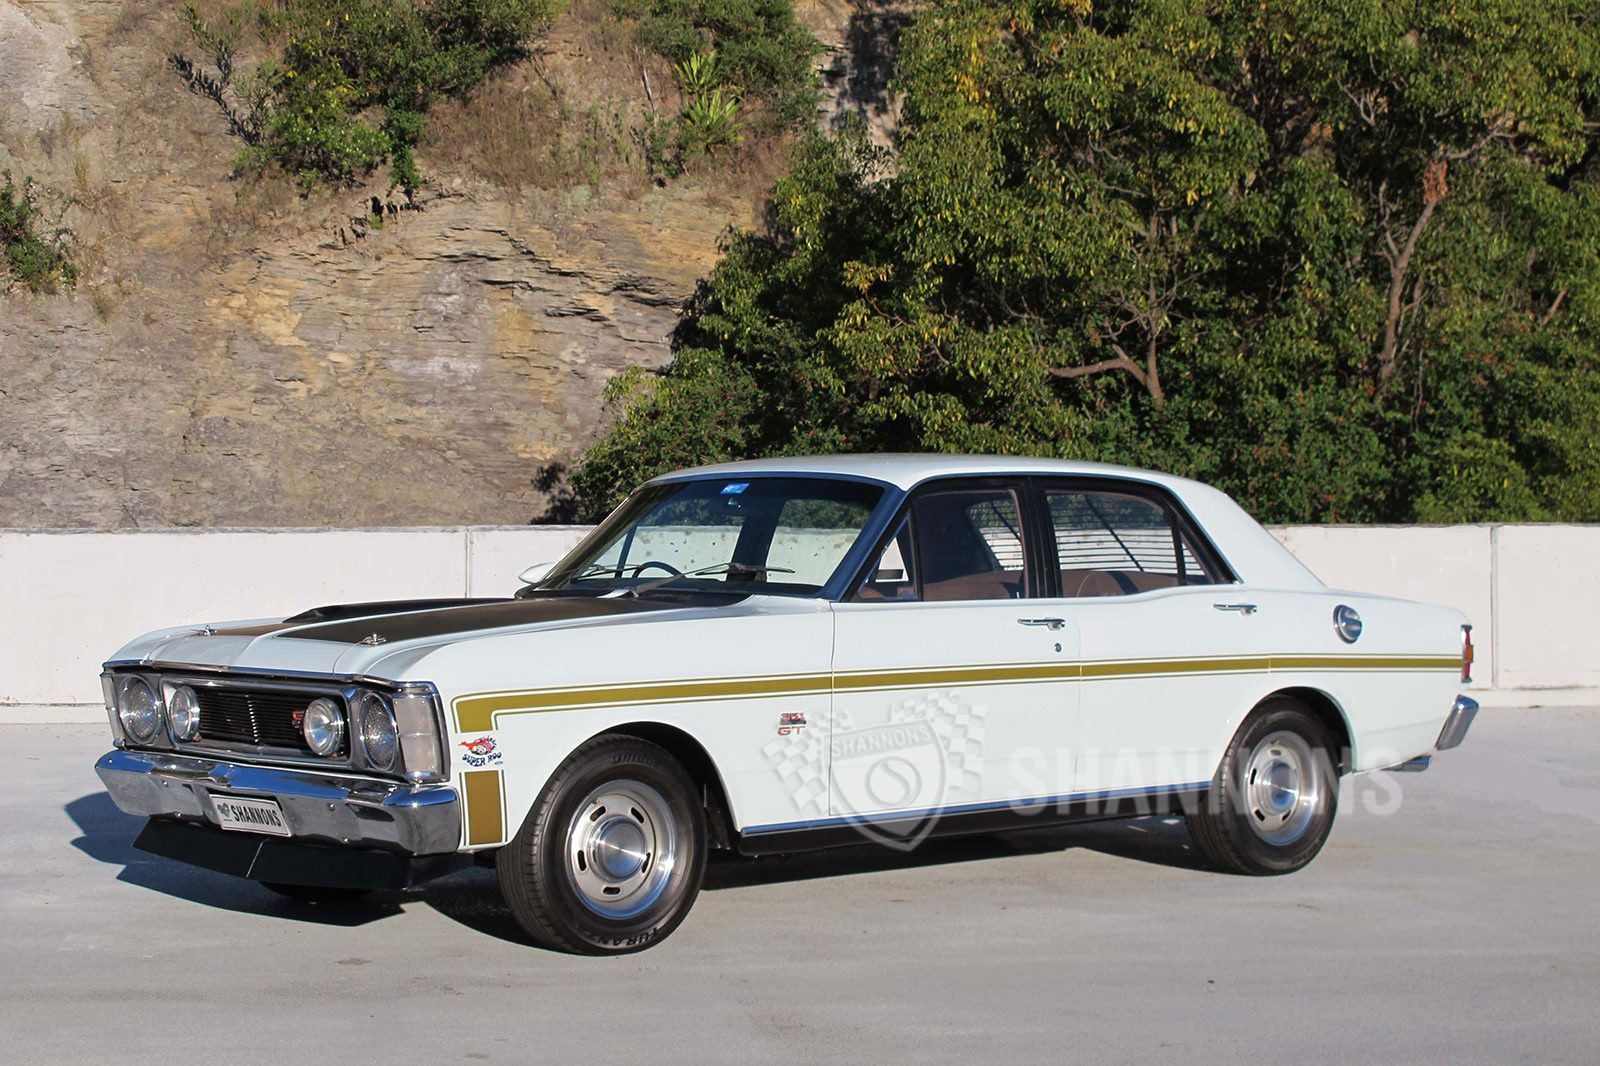 1970 Ford Falcon XW GT-HO Phase II Sedan